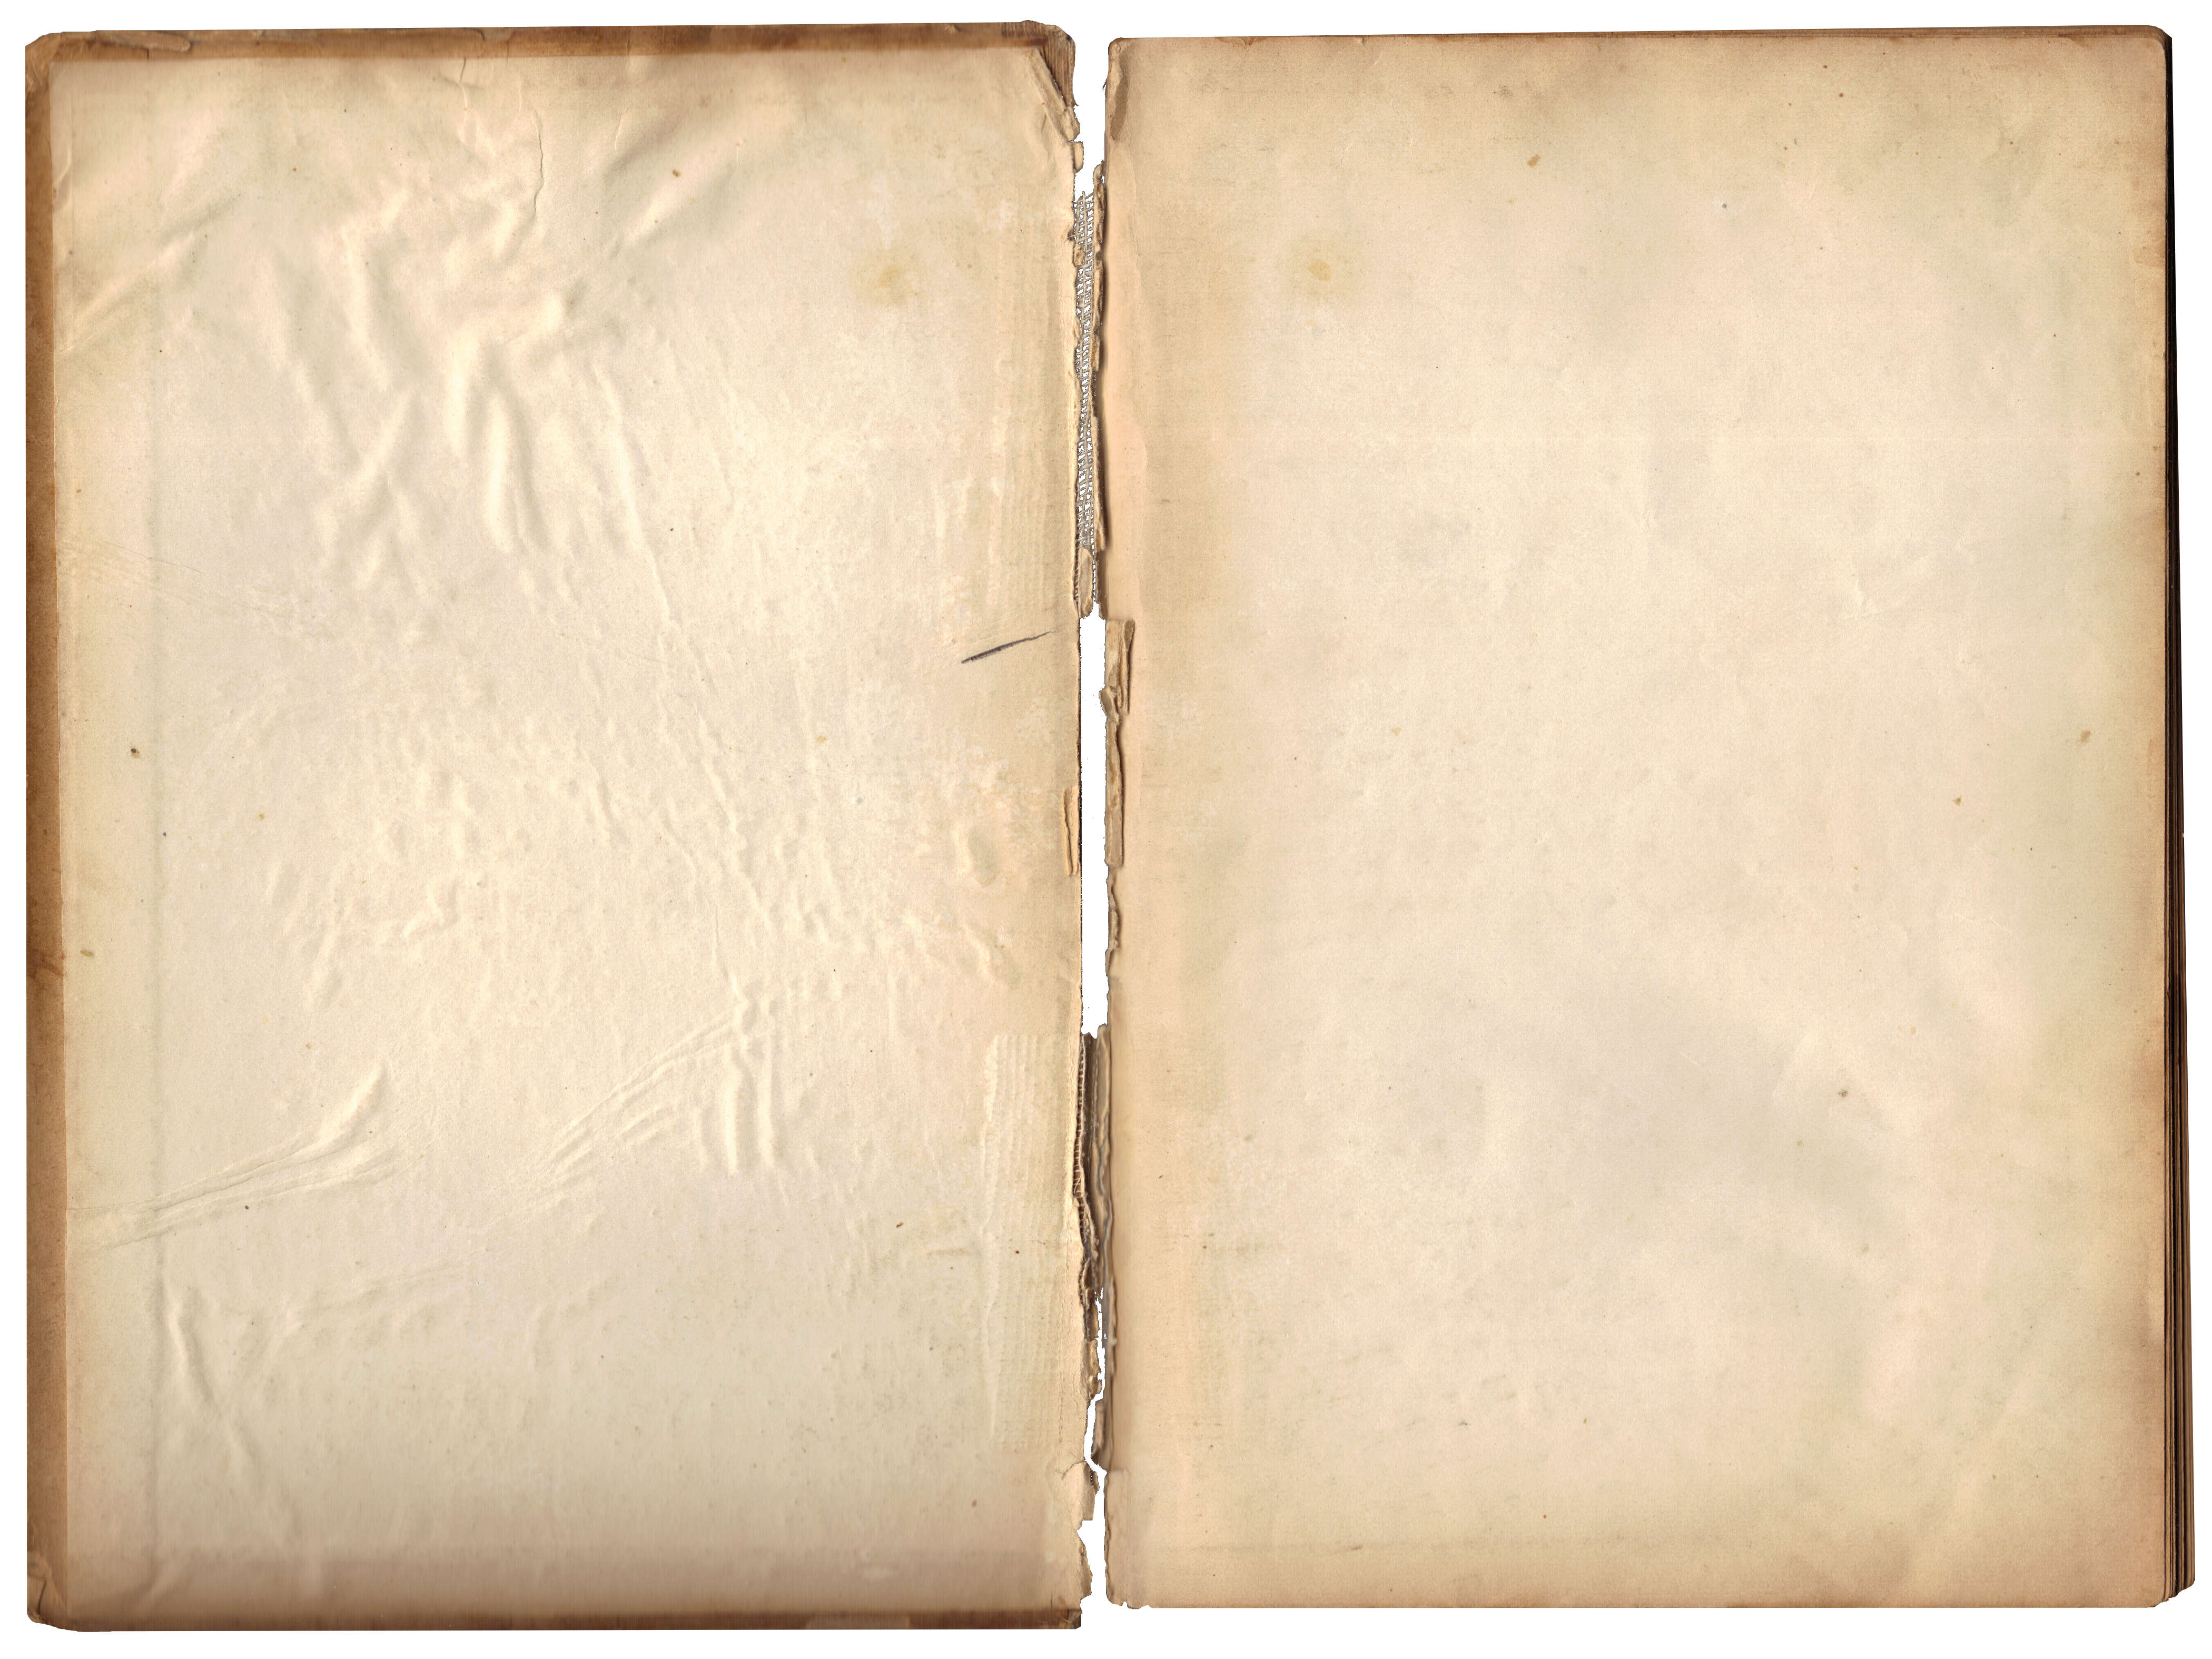 Free Download Old Open Book Textures 1